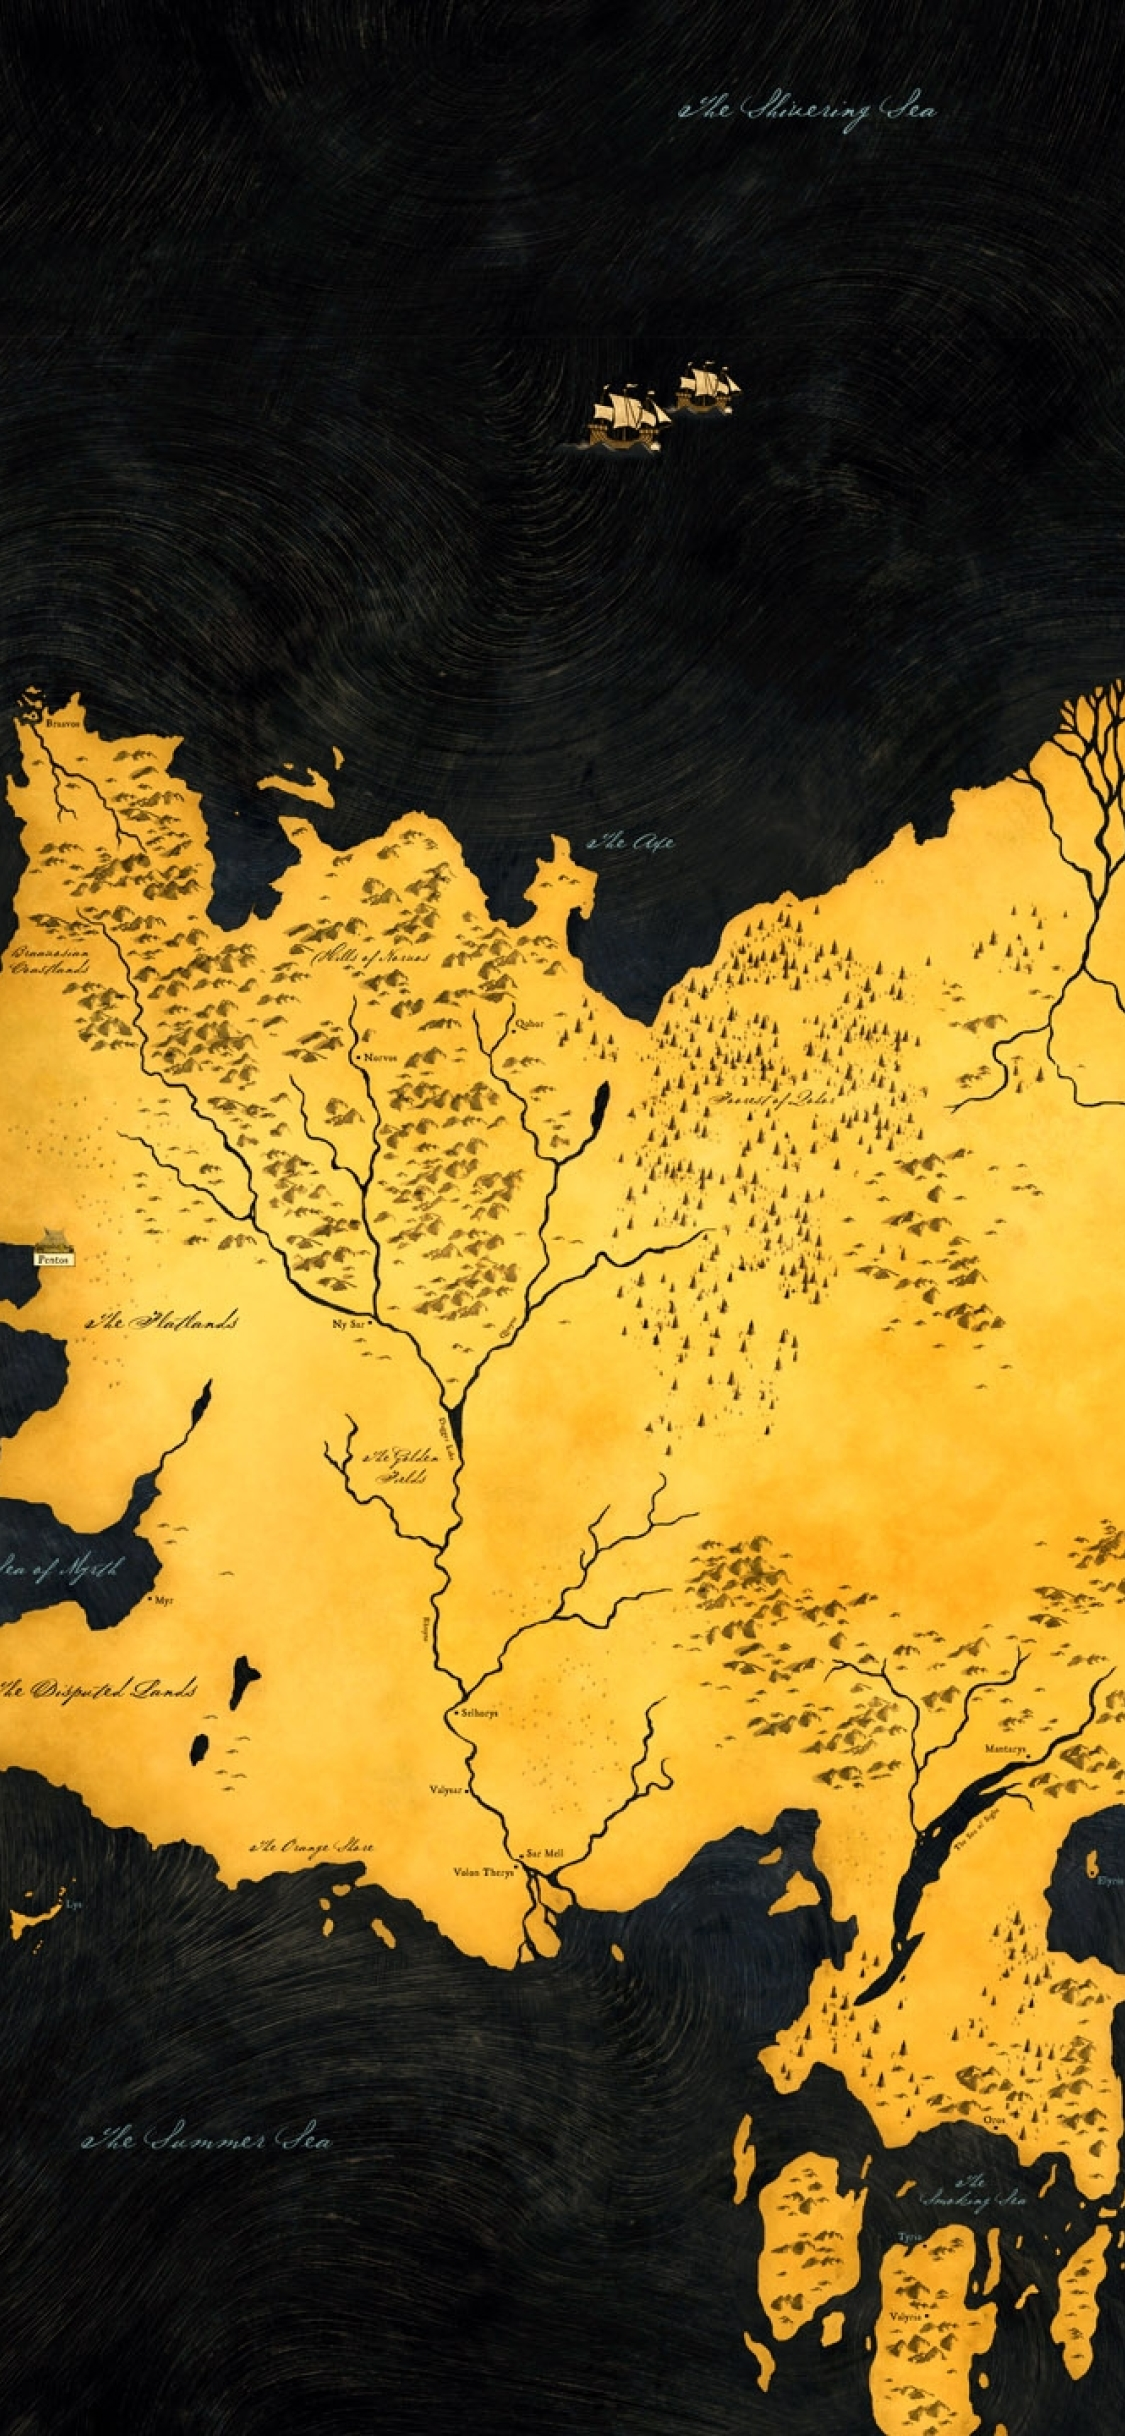 1125x2436 Game Of Thrones Map Hd Wallpaper Iphone Xs Iphone